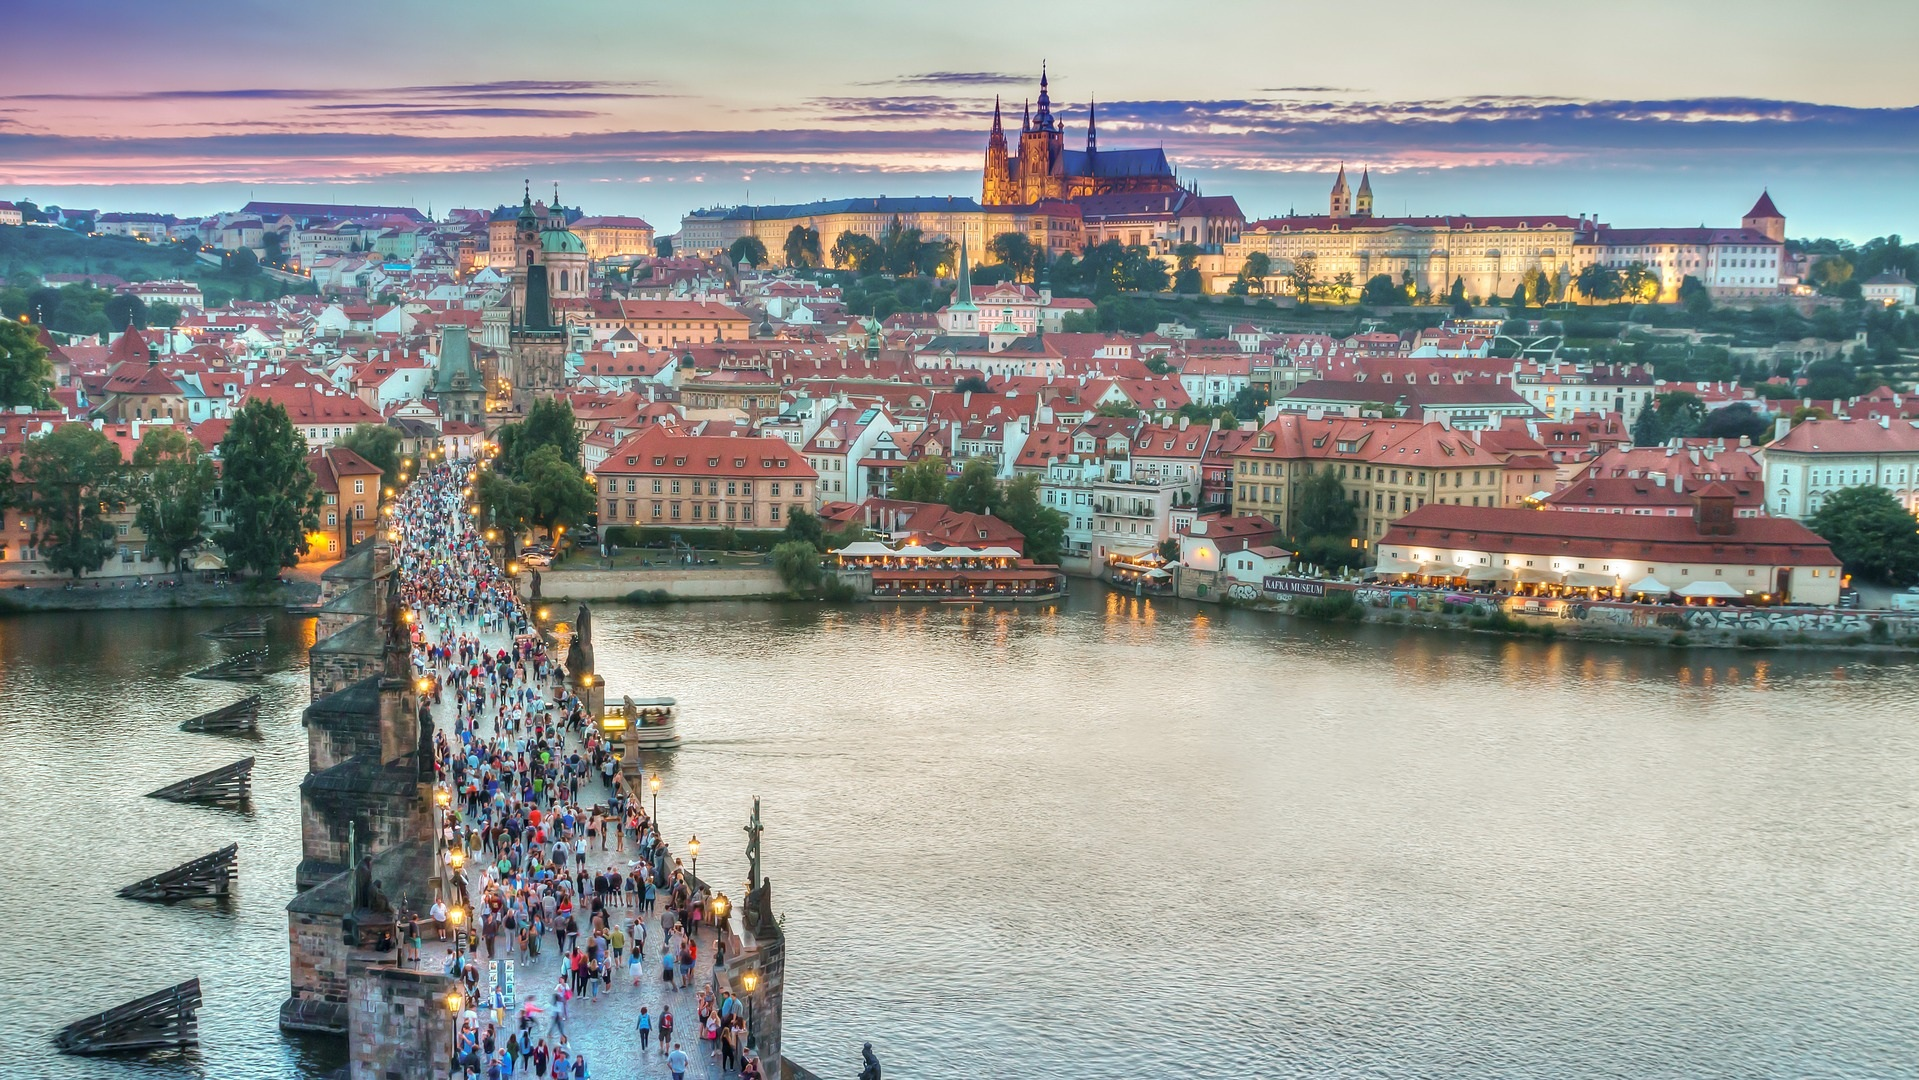 Charles Bridge & Prague Castle - Prague, Czech Republic